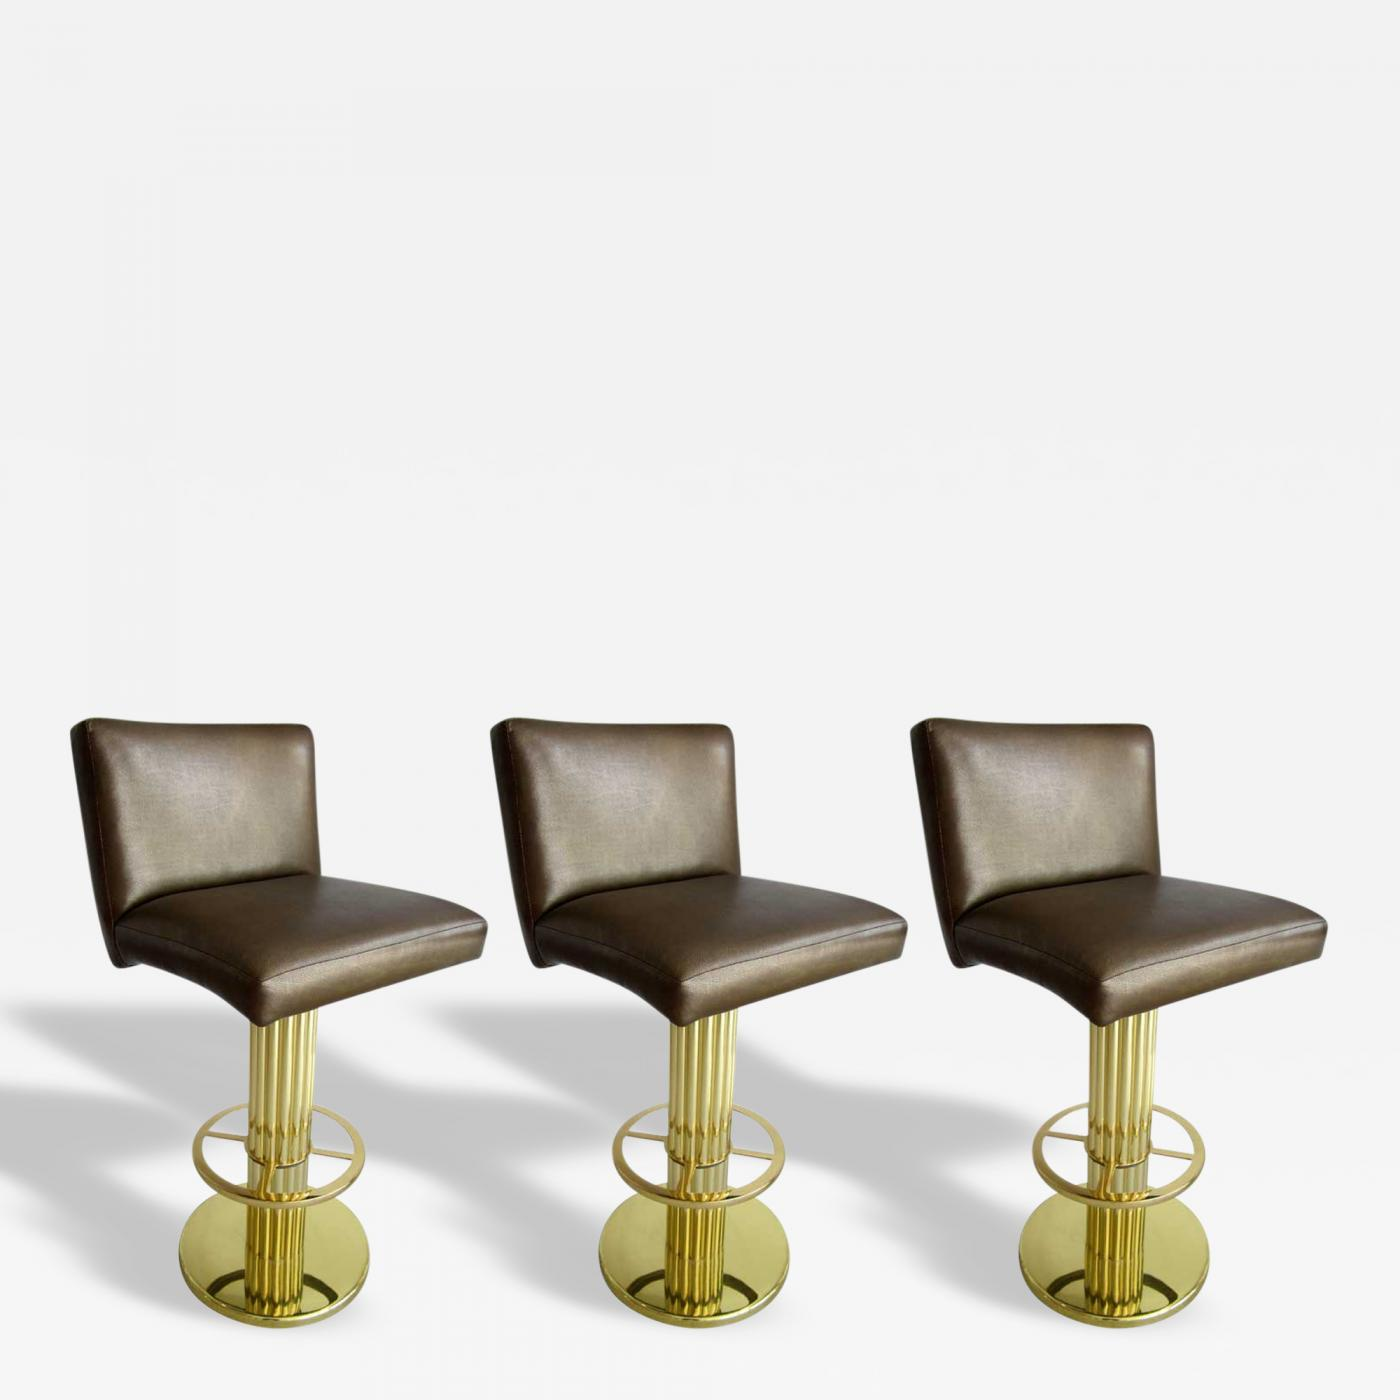 Listings / Furniture / Seating / Stools · Design for Leisure Ltd Three Mid Century Modern Bar ... & Design for Leisure Ltd - Three Mid-Century Modern Bar Stools in ... islam-shia.org